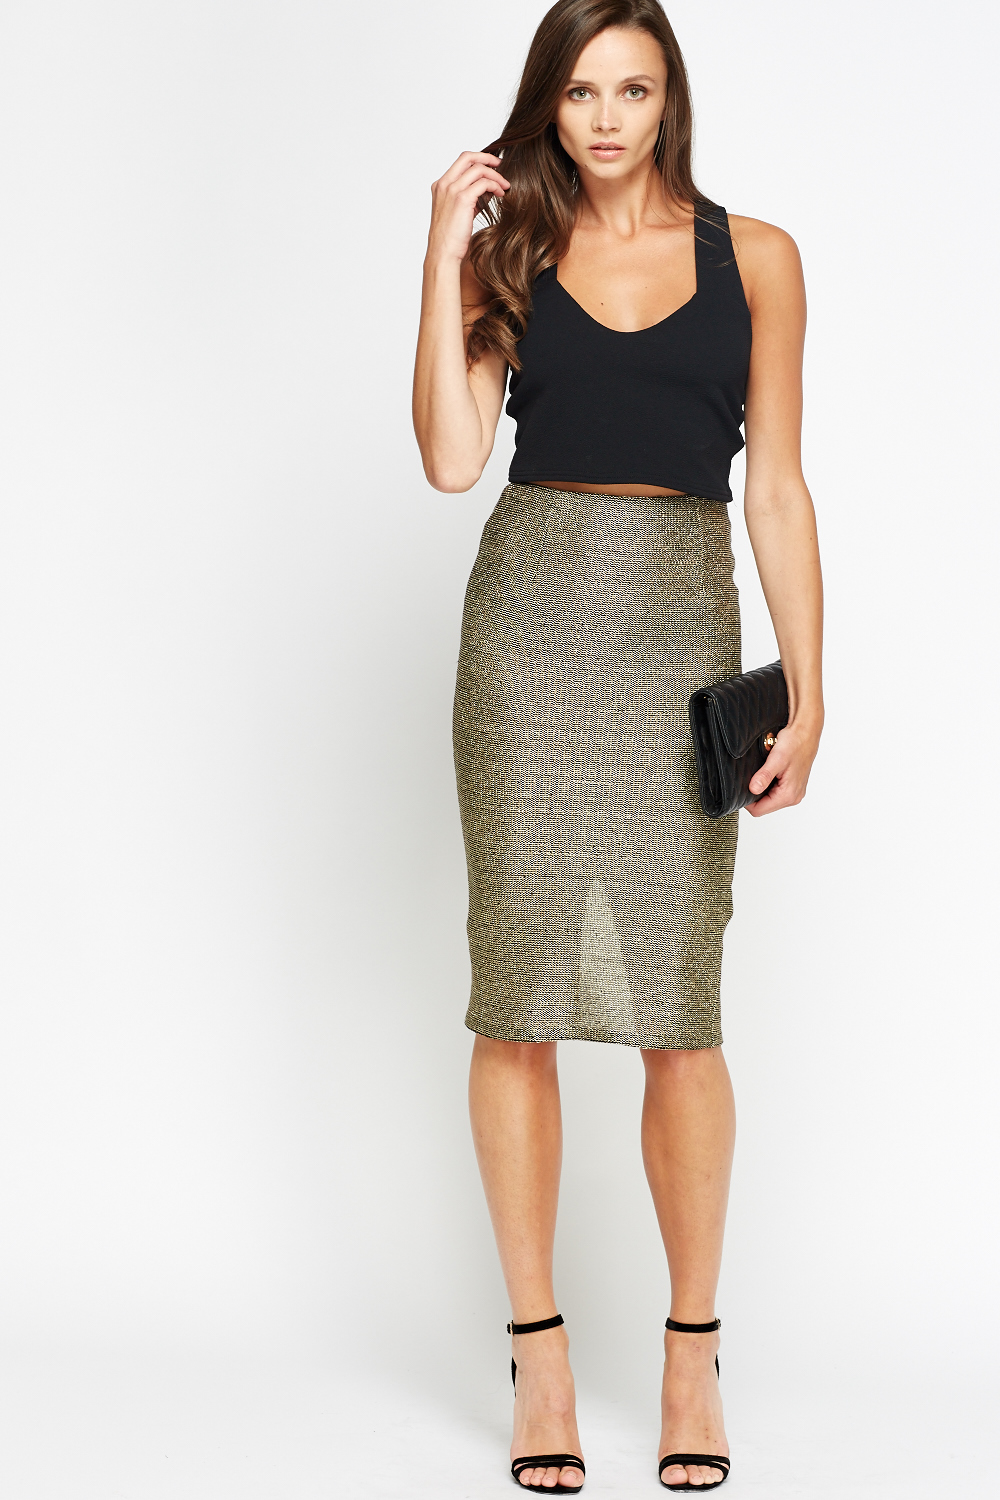 Metallic Gold Pencil Skirt Just 163 5